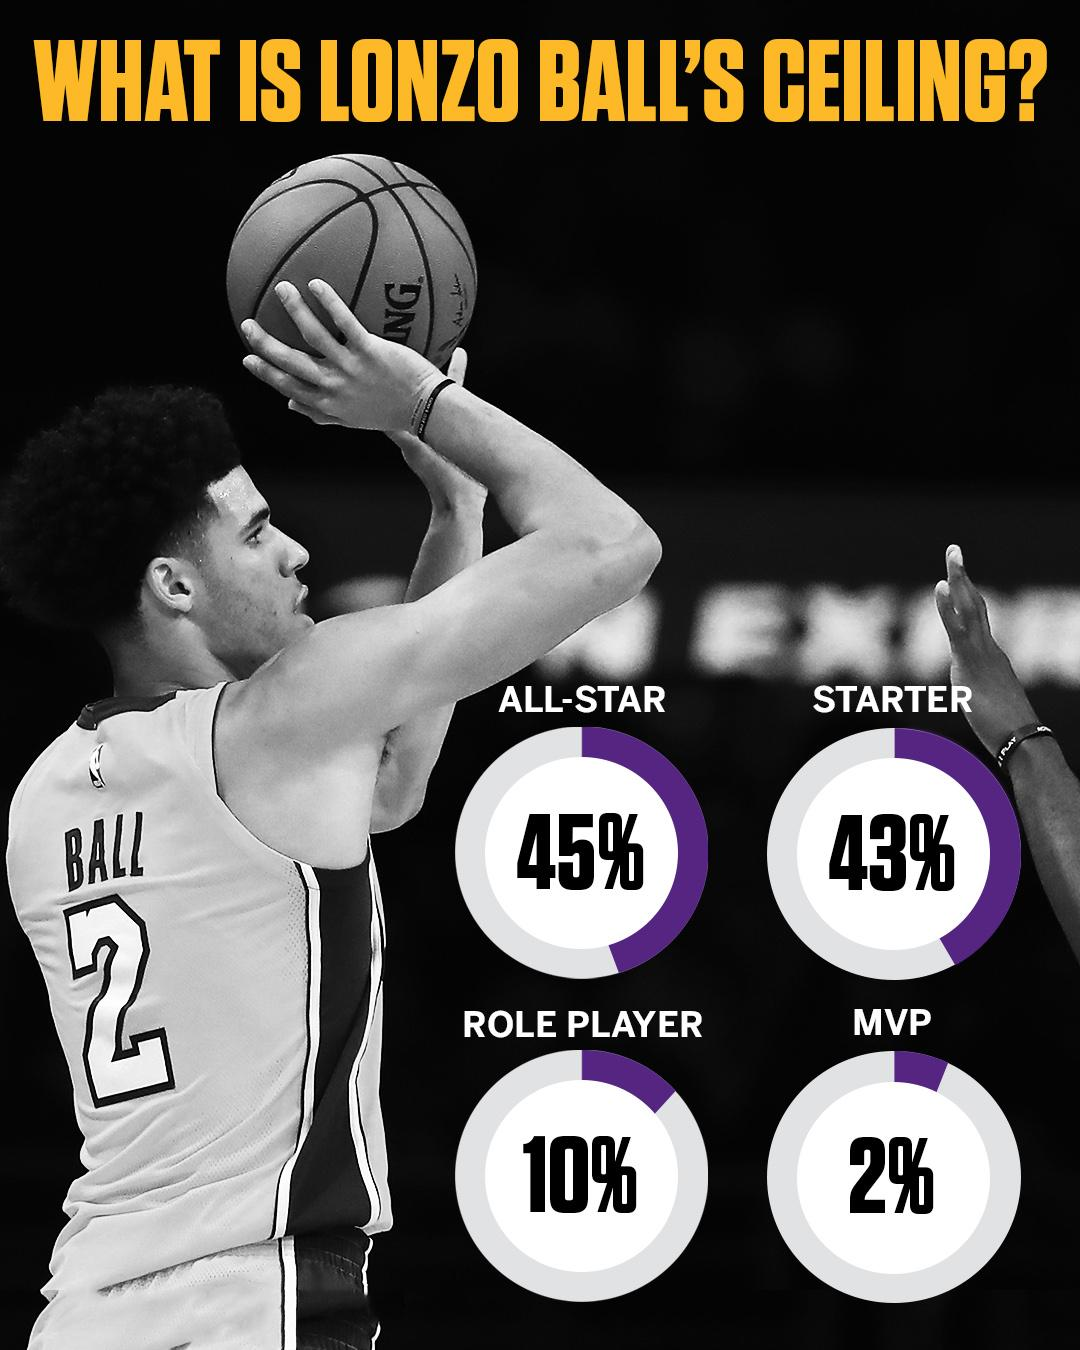 We asked 59 NBA pros what Lonzo's ceiling is.  Here's what they had to say. https://t.co/xI0hntctkQ https://t.co/F8GXJA93Og